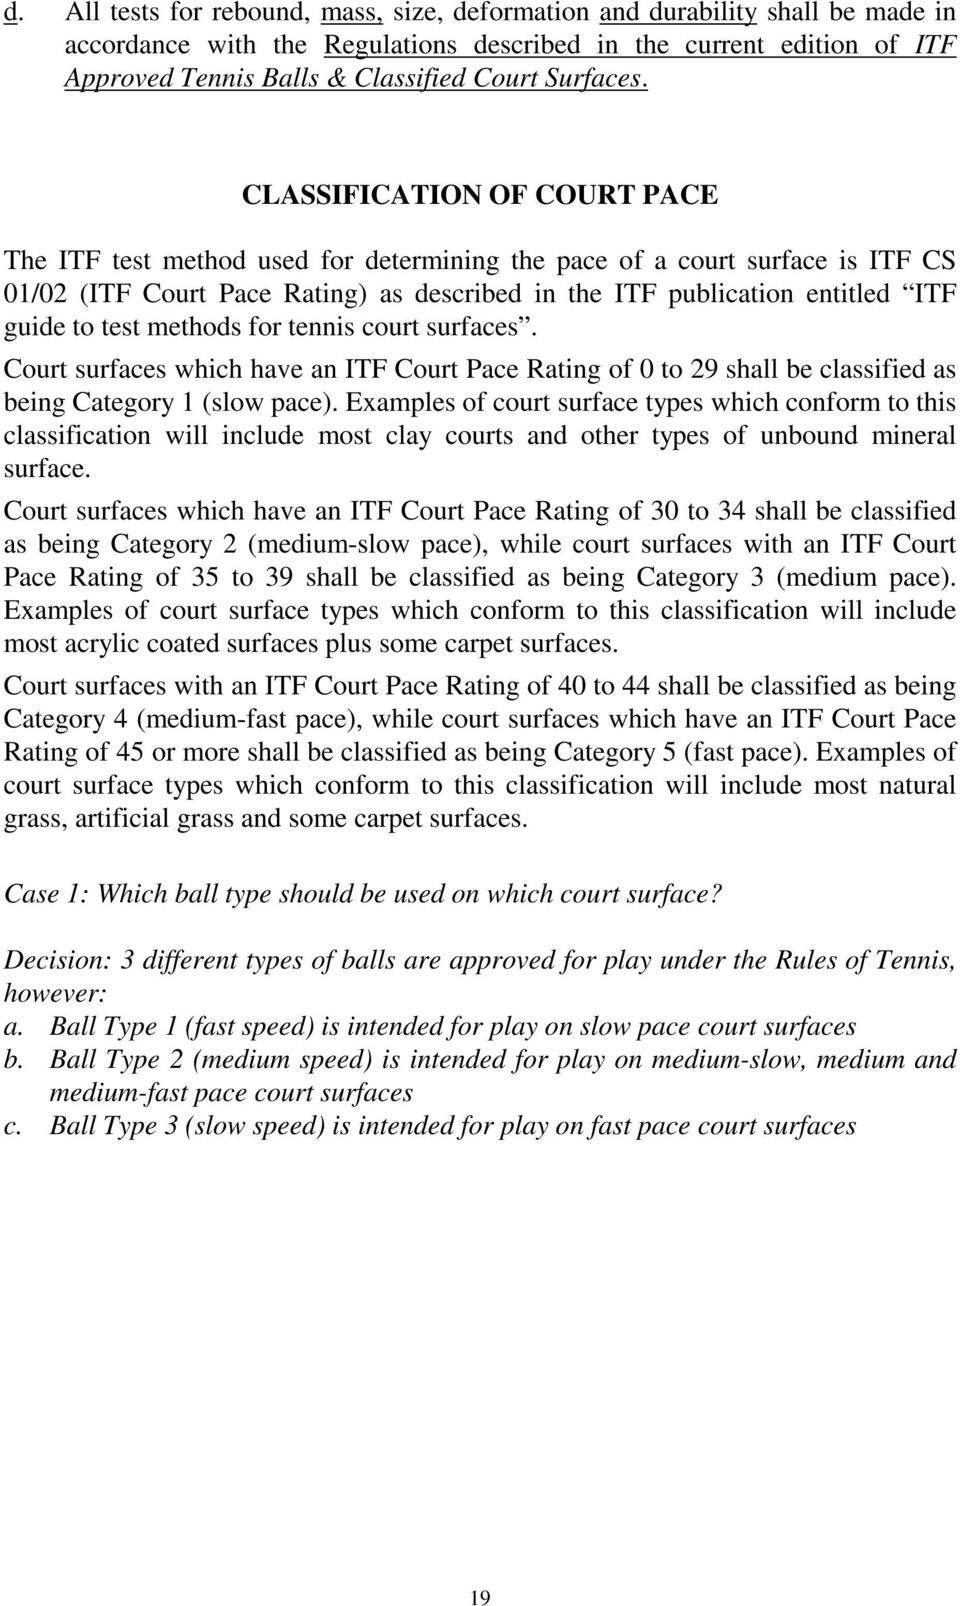 CLASSIFICATION OF COURT PACE The ITF test method used for determining the pace of a court surface is ITF CS 01/02 (ITF Court Pace Rating) as described in the ITF publication entitled ITF guide to